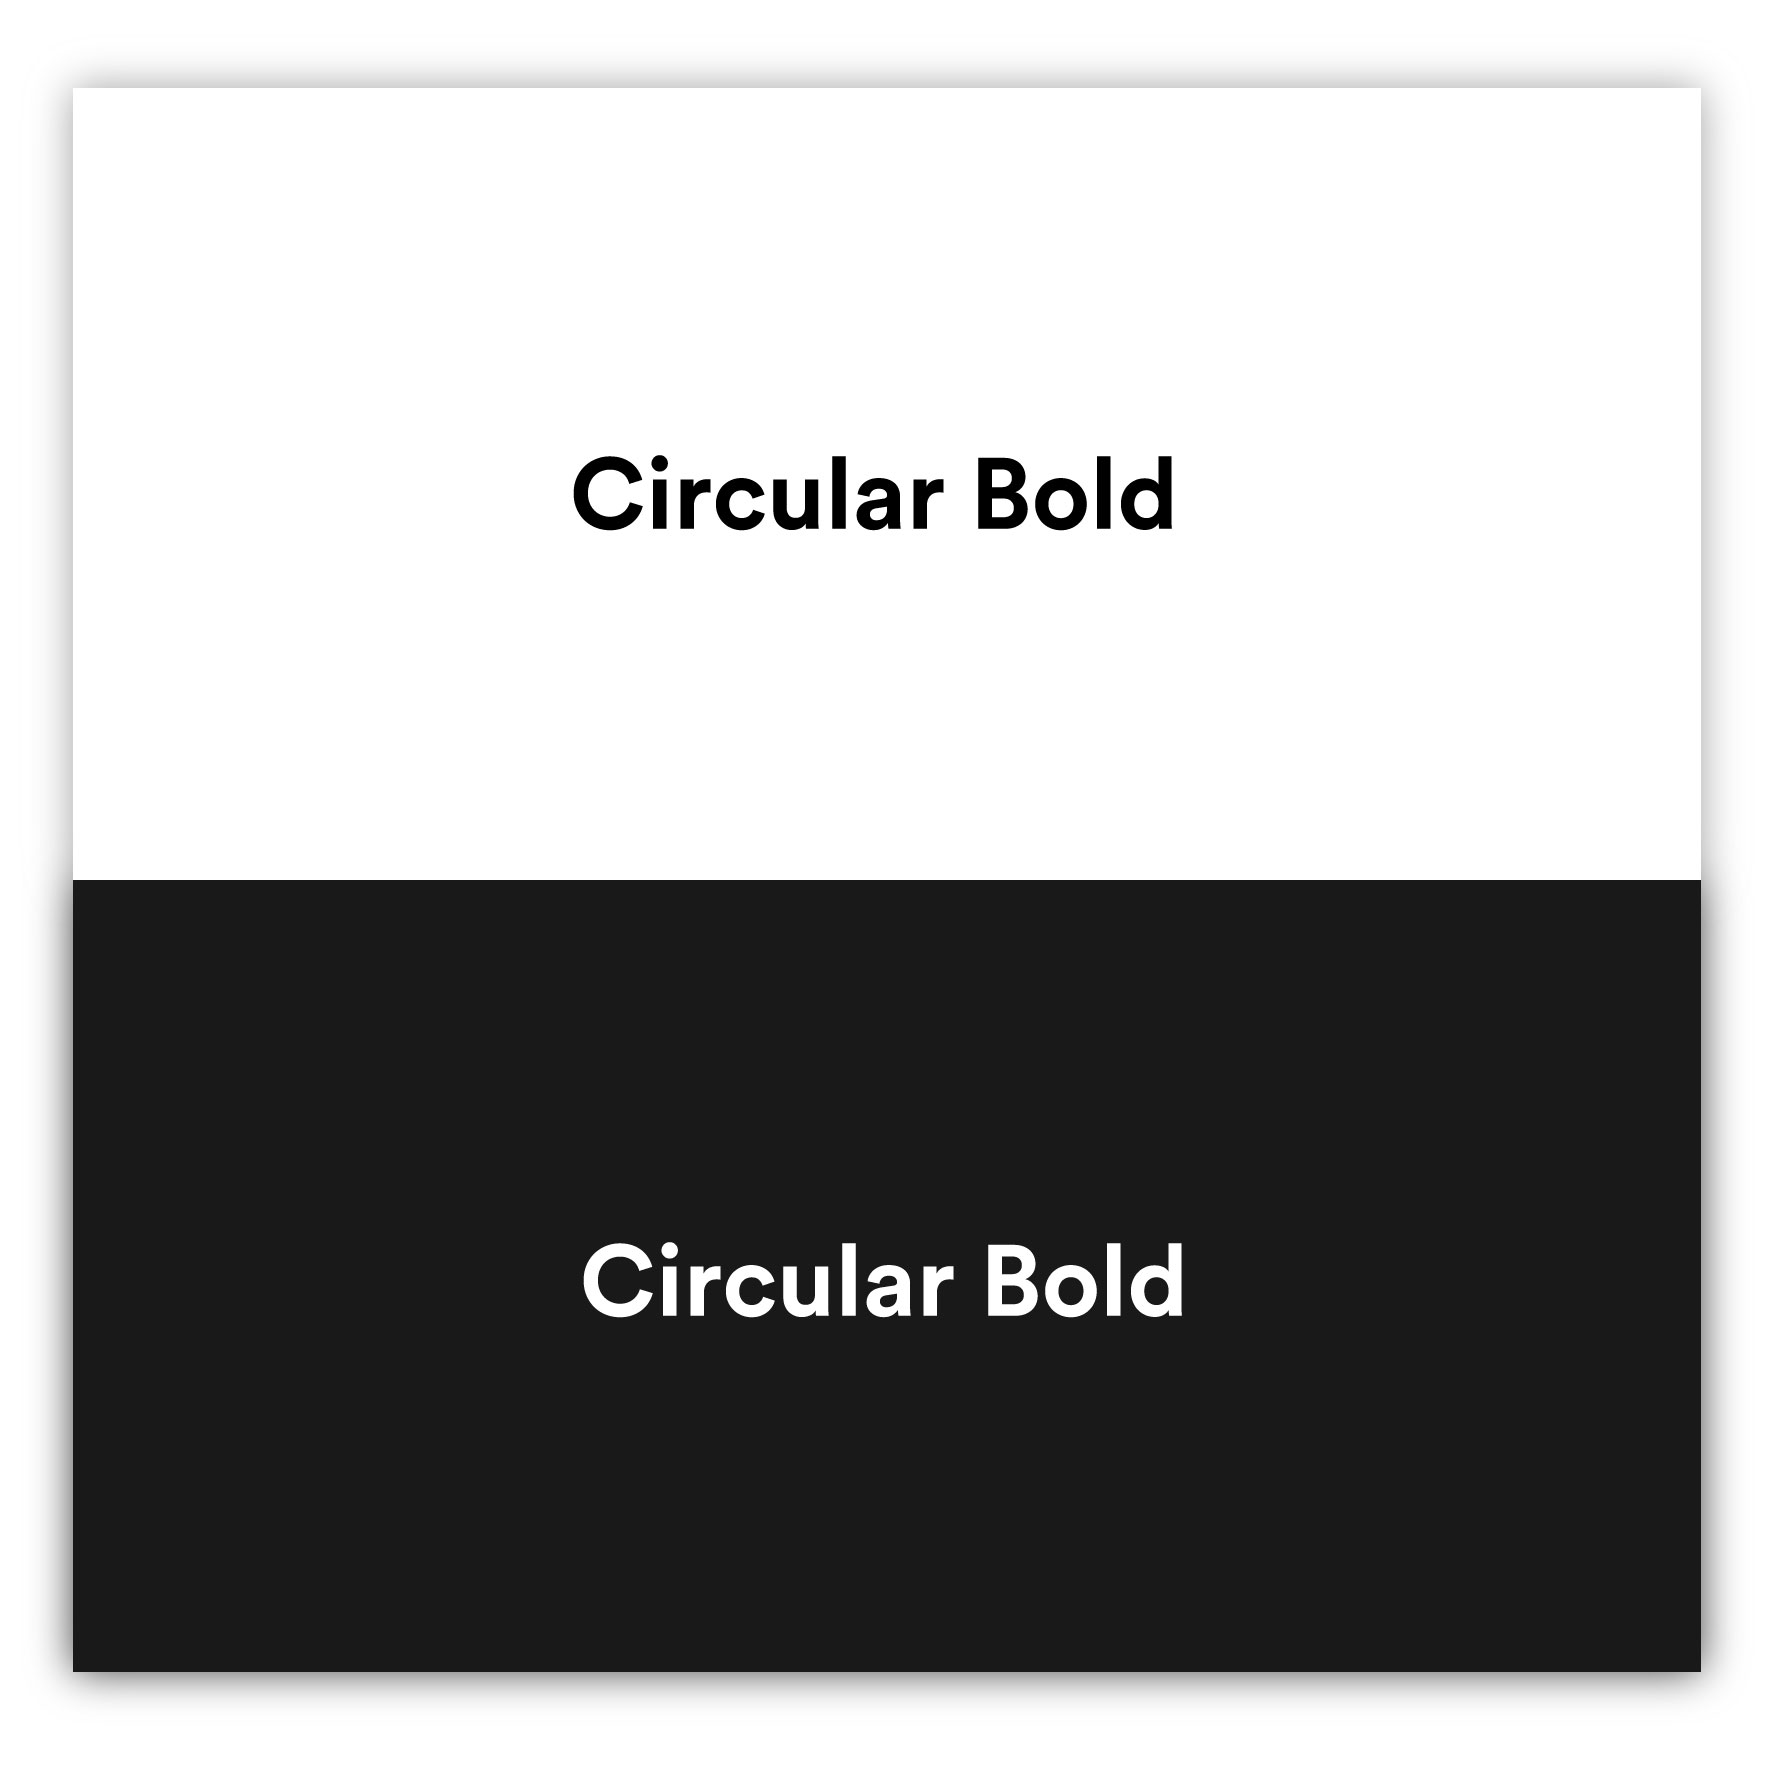 Circular Bold - Best fonts of 2020